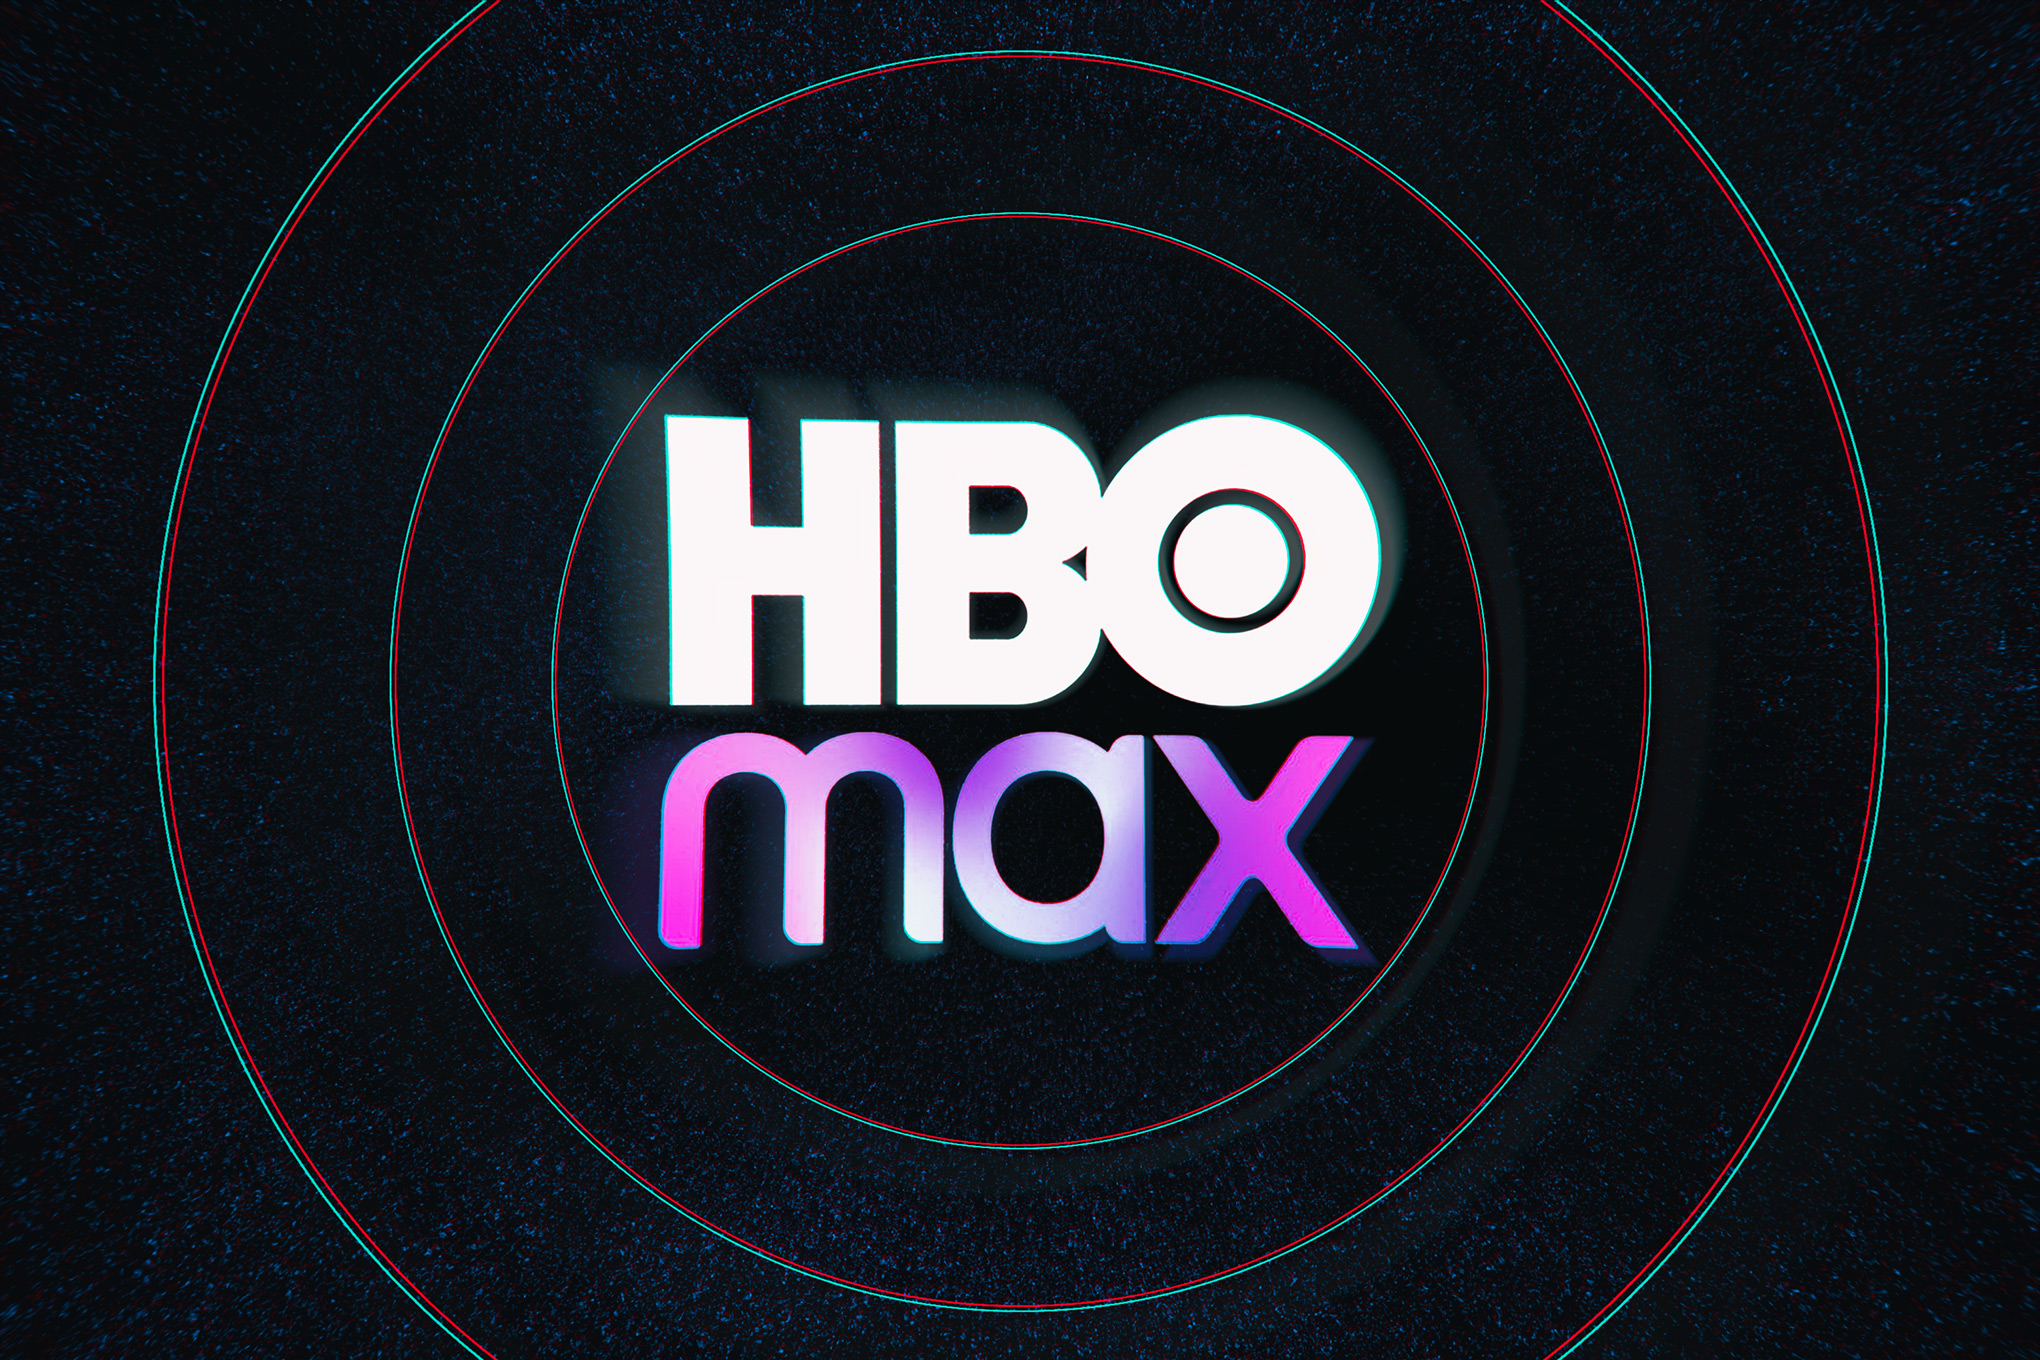 The HBO Max logo against a dark background with white circles around it.